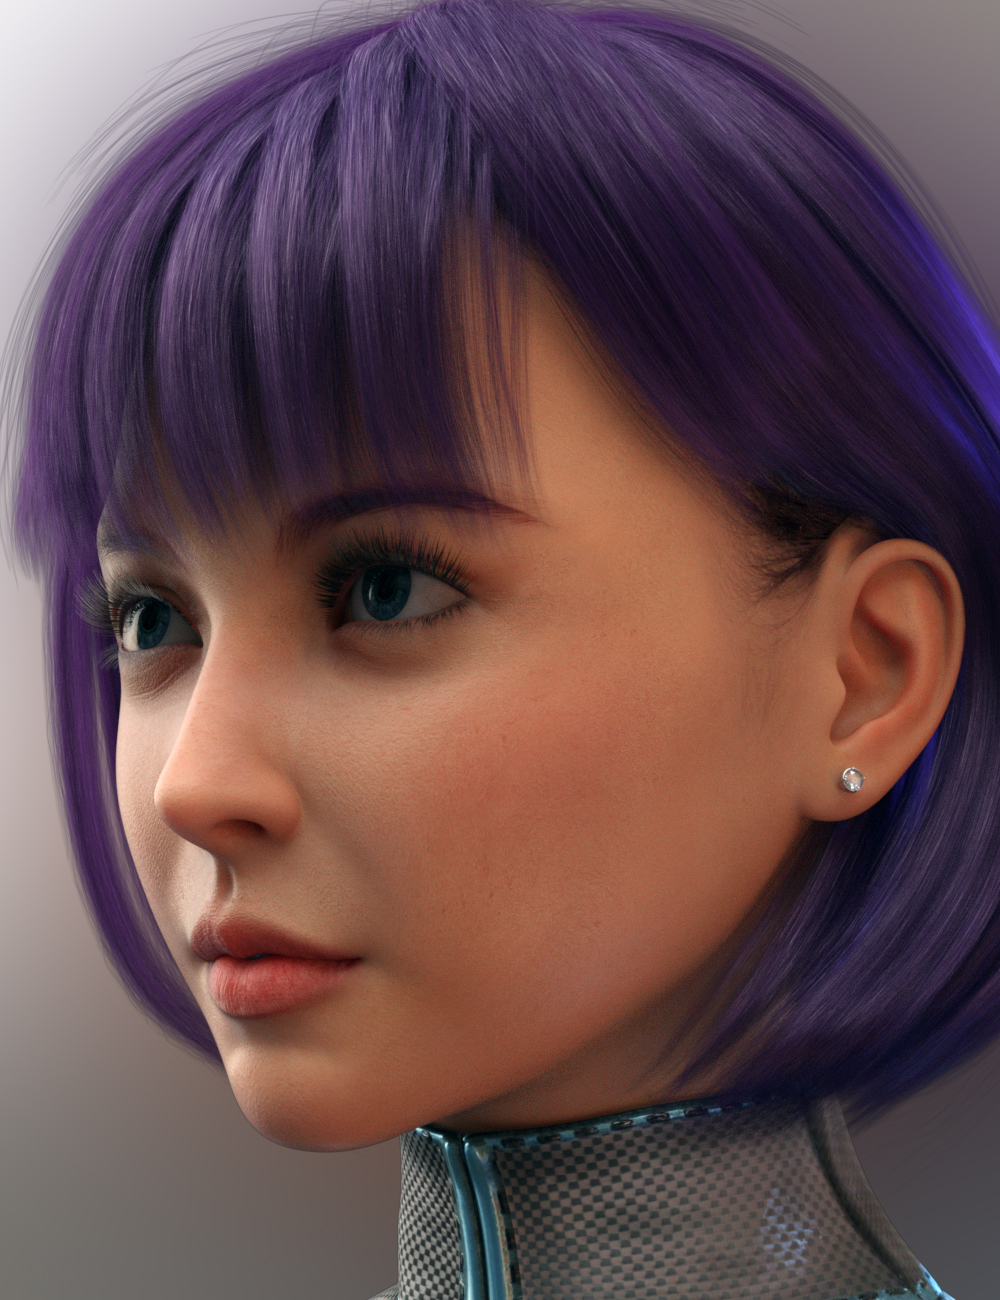 Vo Athena for Genesis 8.1 Female by: VOOTW, 3D Models by Daz 3D